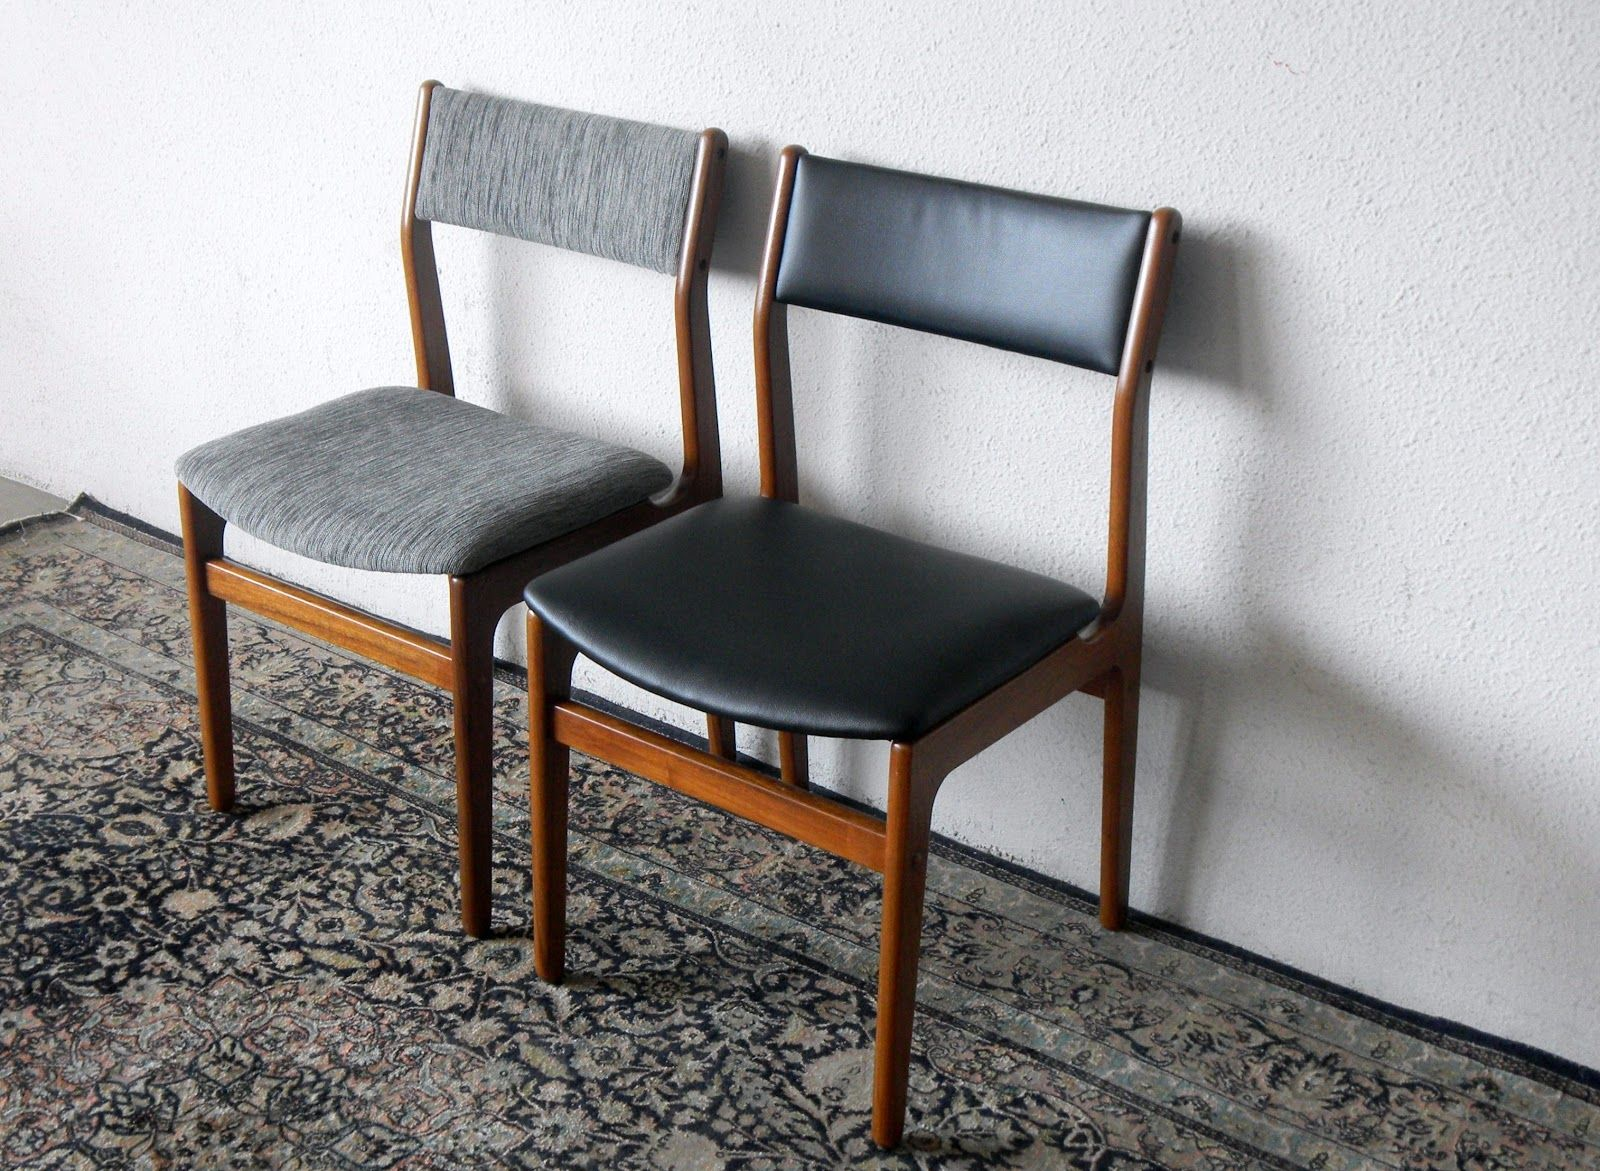 reupholstering a dining chair. Reupholster Dining Chairs Reupholstering A Chair